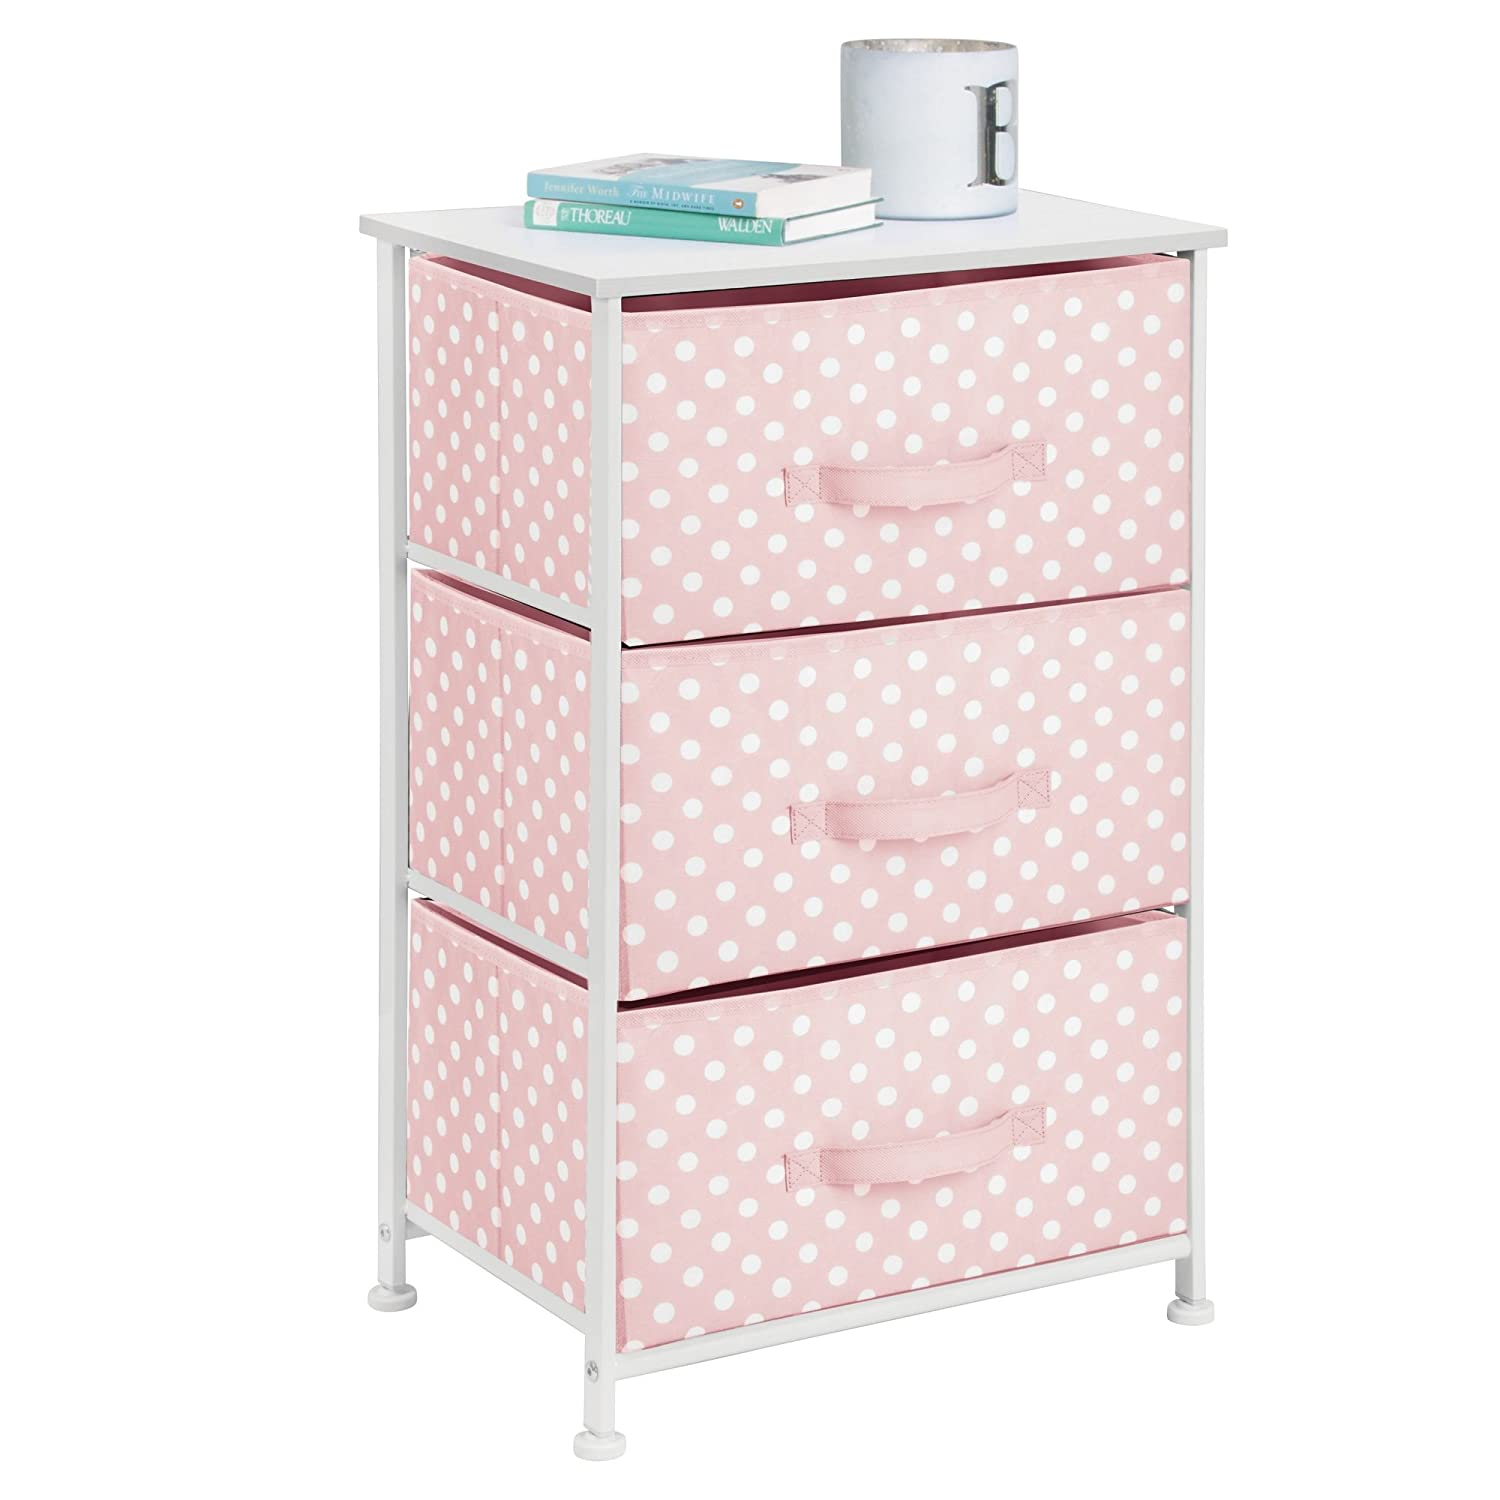 mDesign 3-Drawer Vertical Dresser Storage Tower Light Gray with White Polka Dots MetroDecor 00618MDCO Sturdy Steel Frame Multi-Bin Organizer Unit for Child//Kids Bedroom or Nursery Wood Top and Easy Pull Fabric Bins